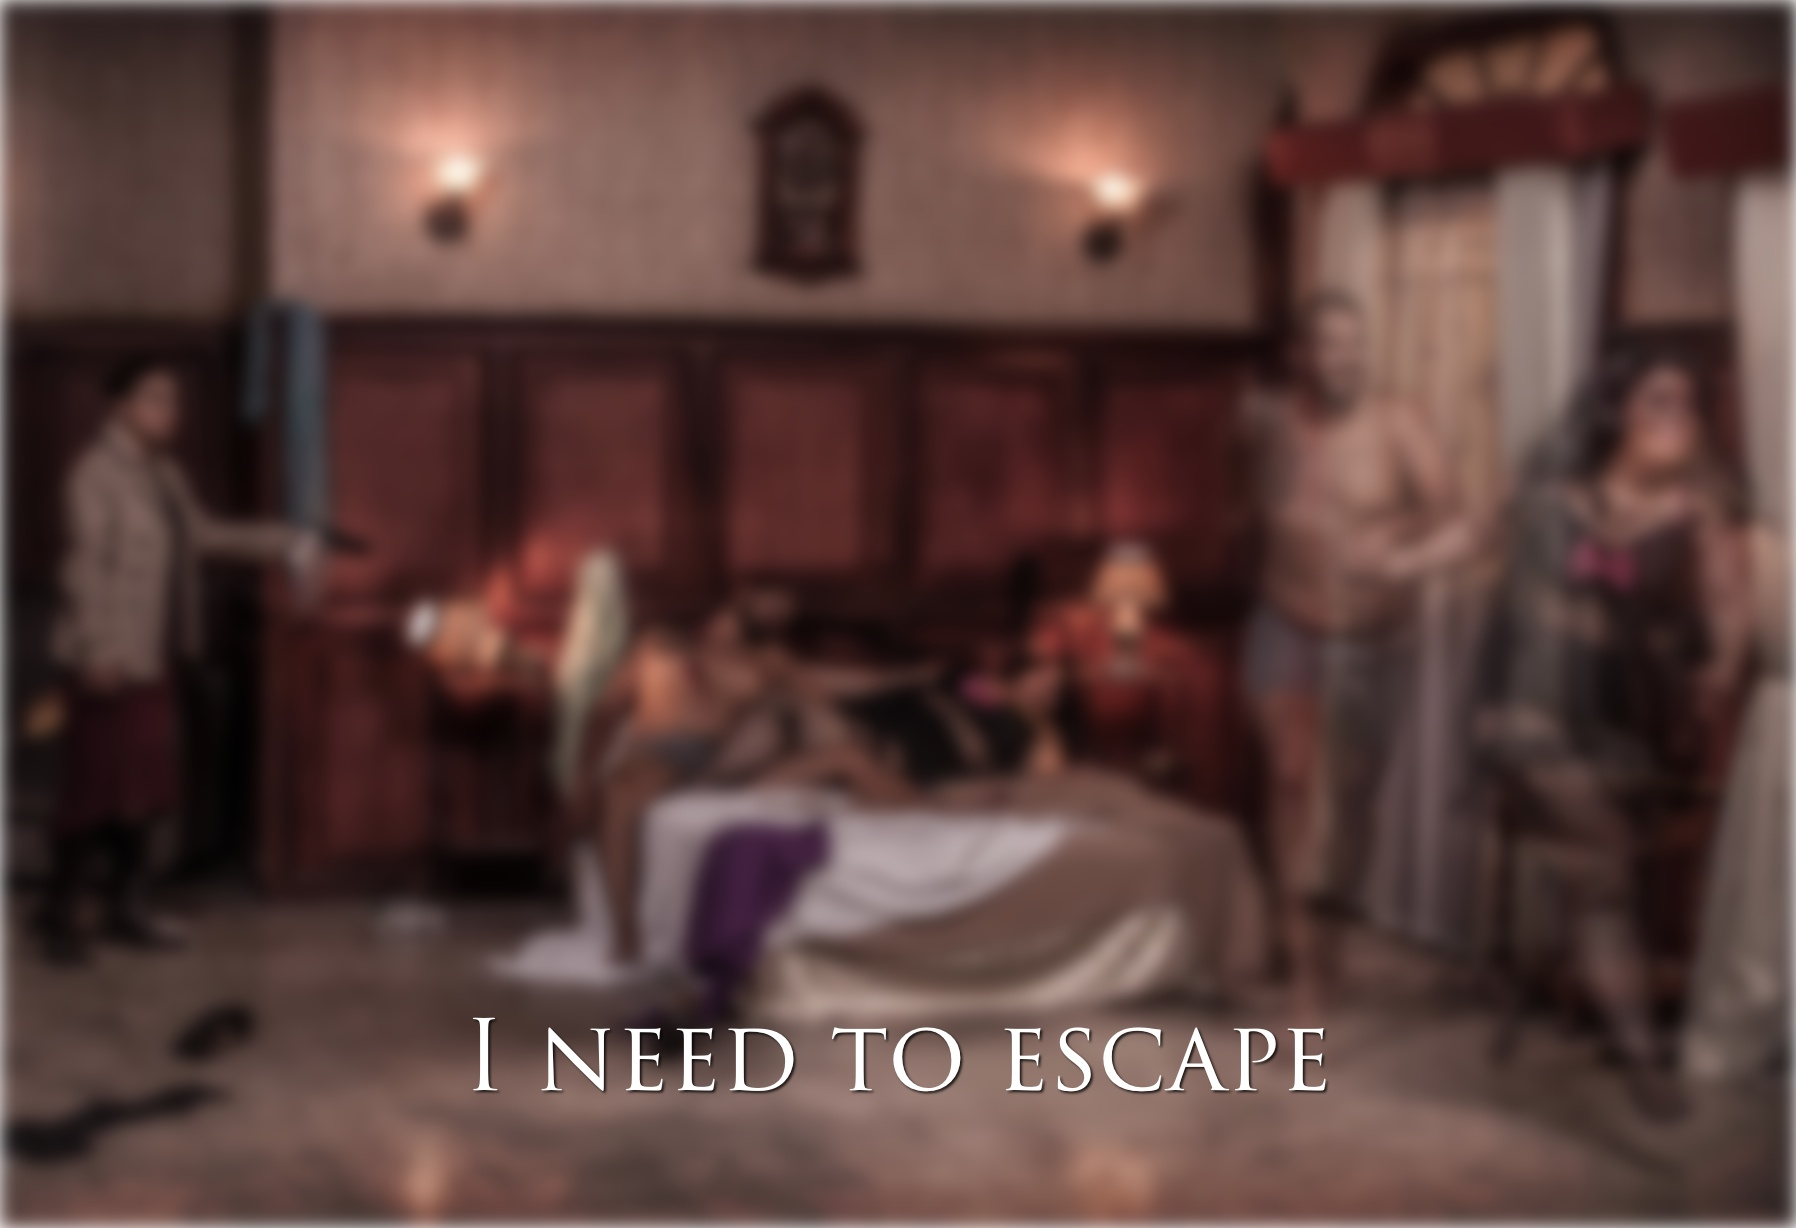 I need to escape